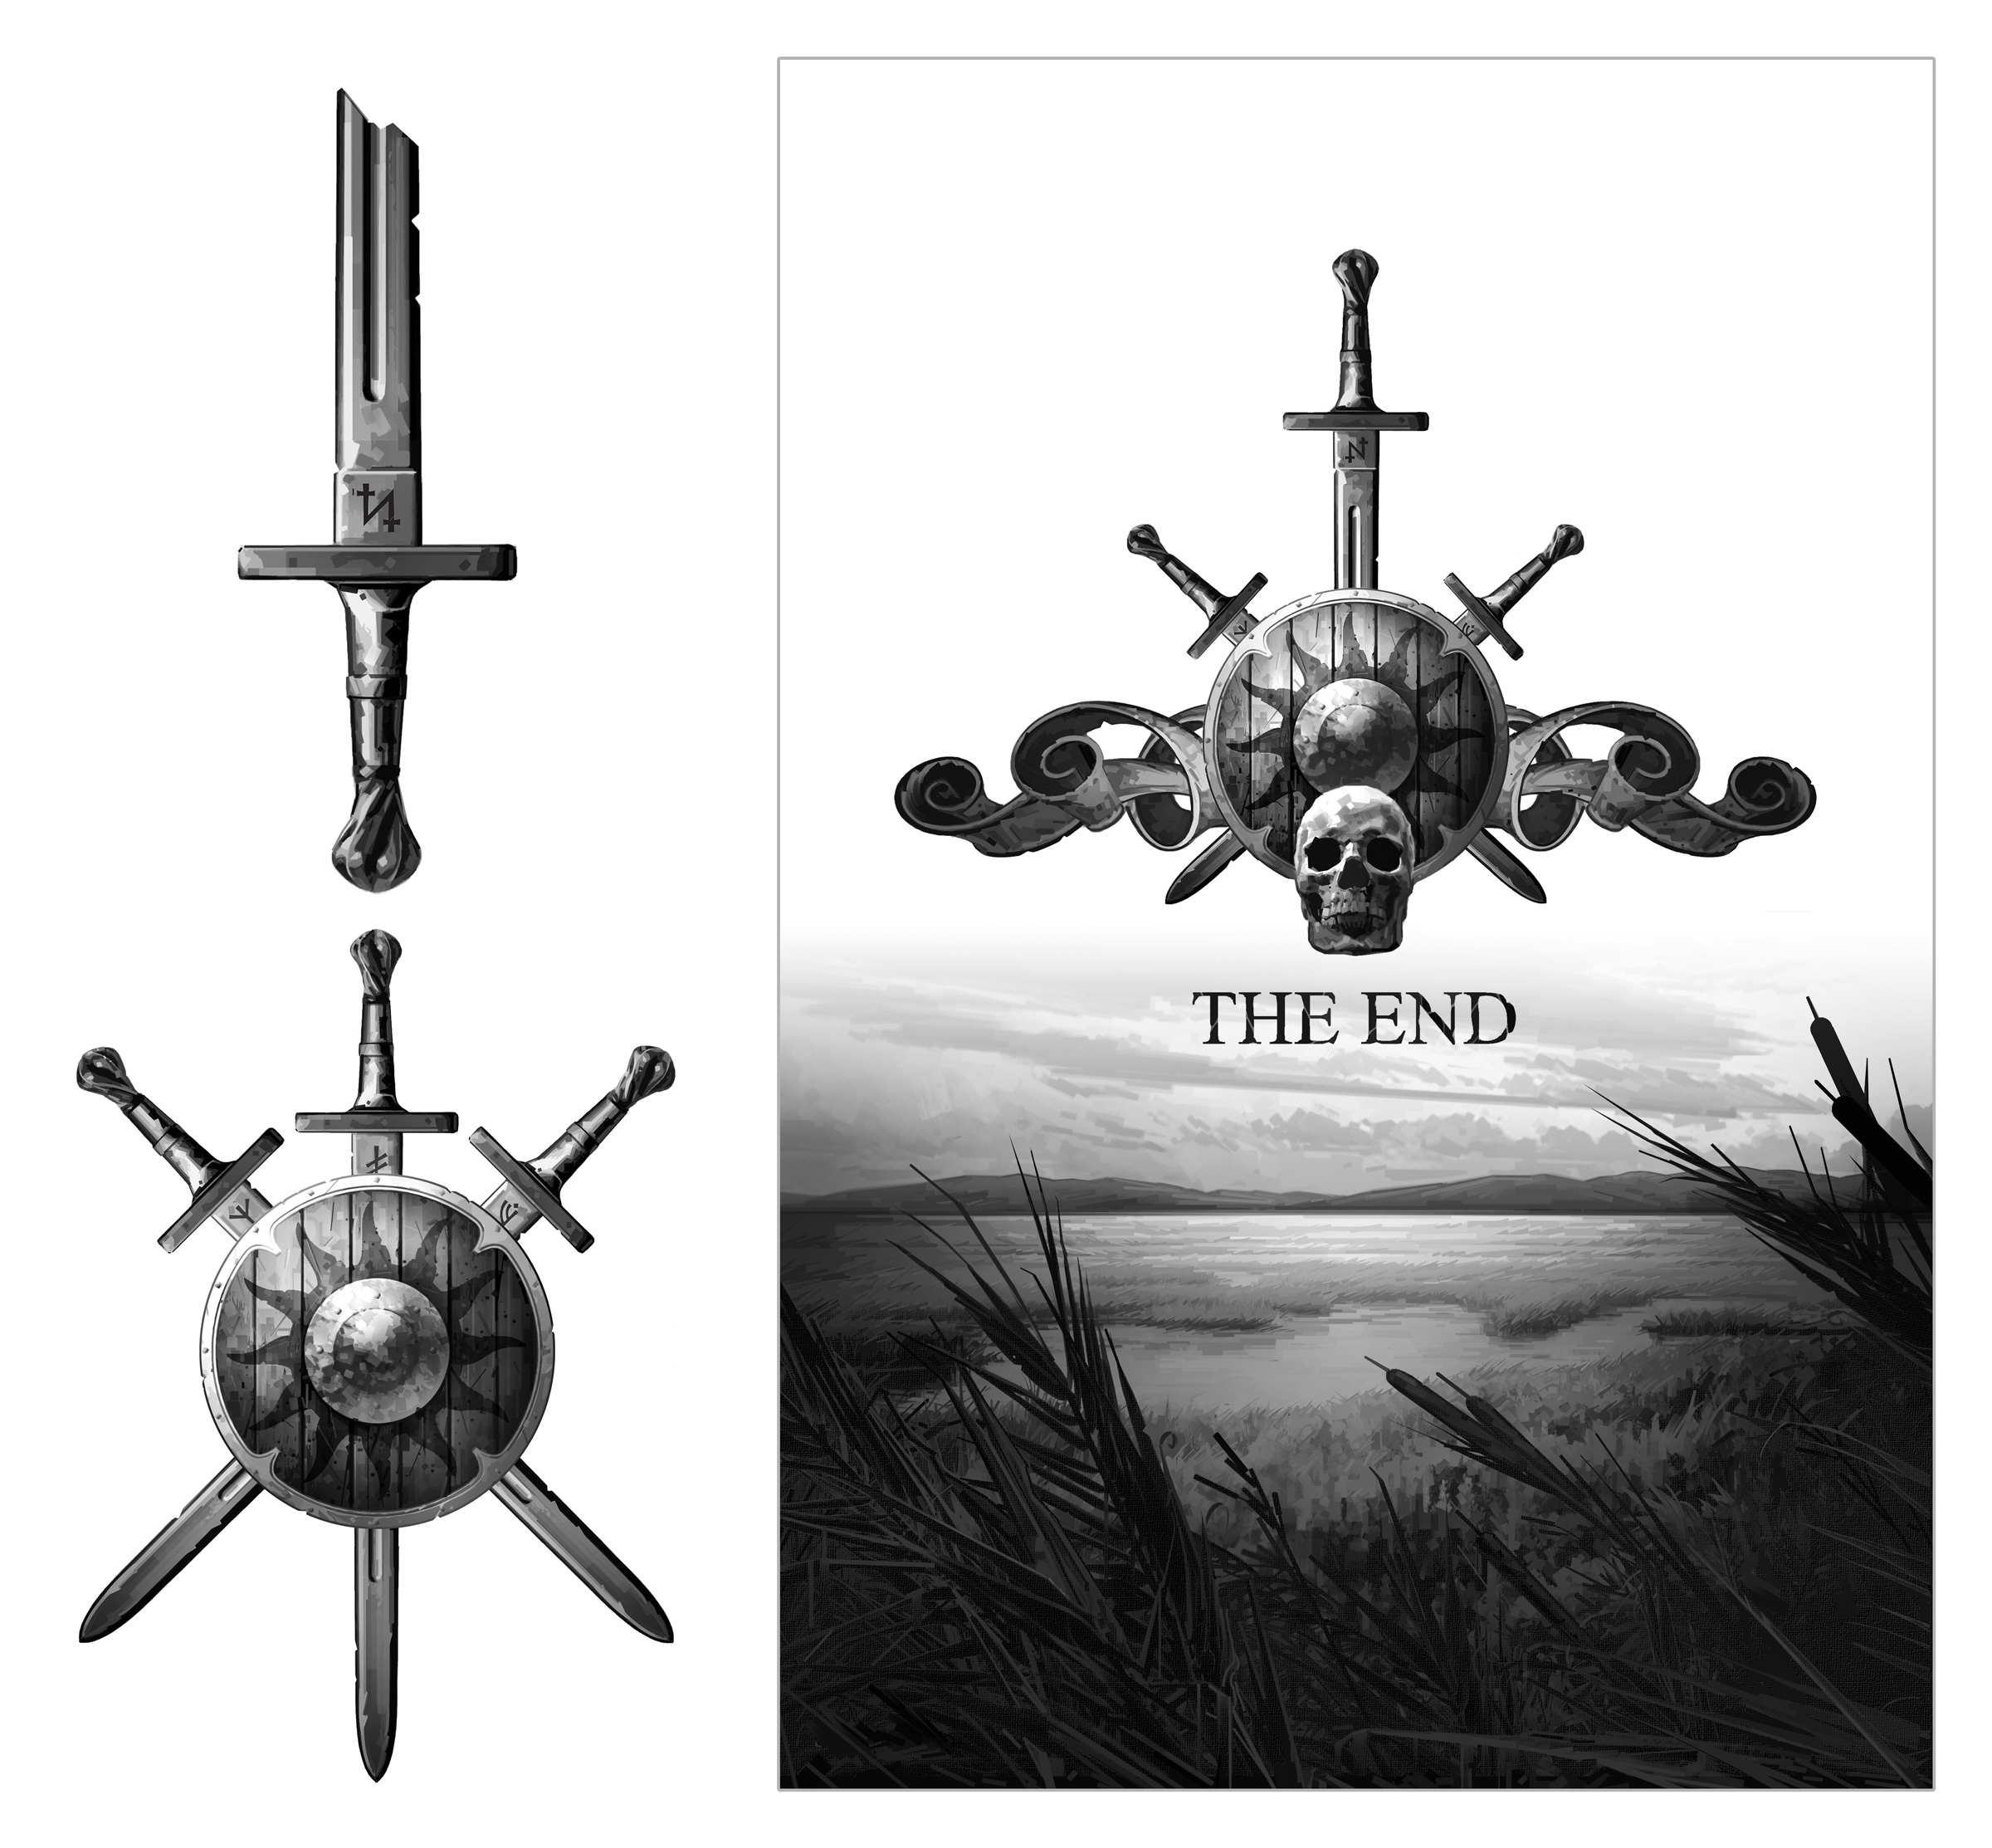 Swords-Against-Death-Interior-Spot-Illustrations-Dominick-Saponaro.jpg